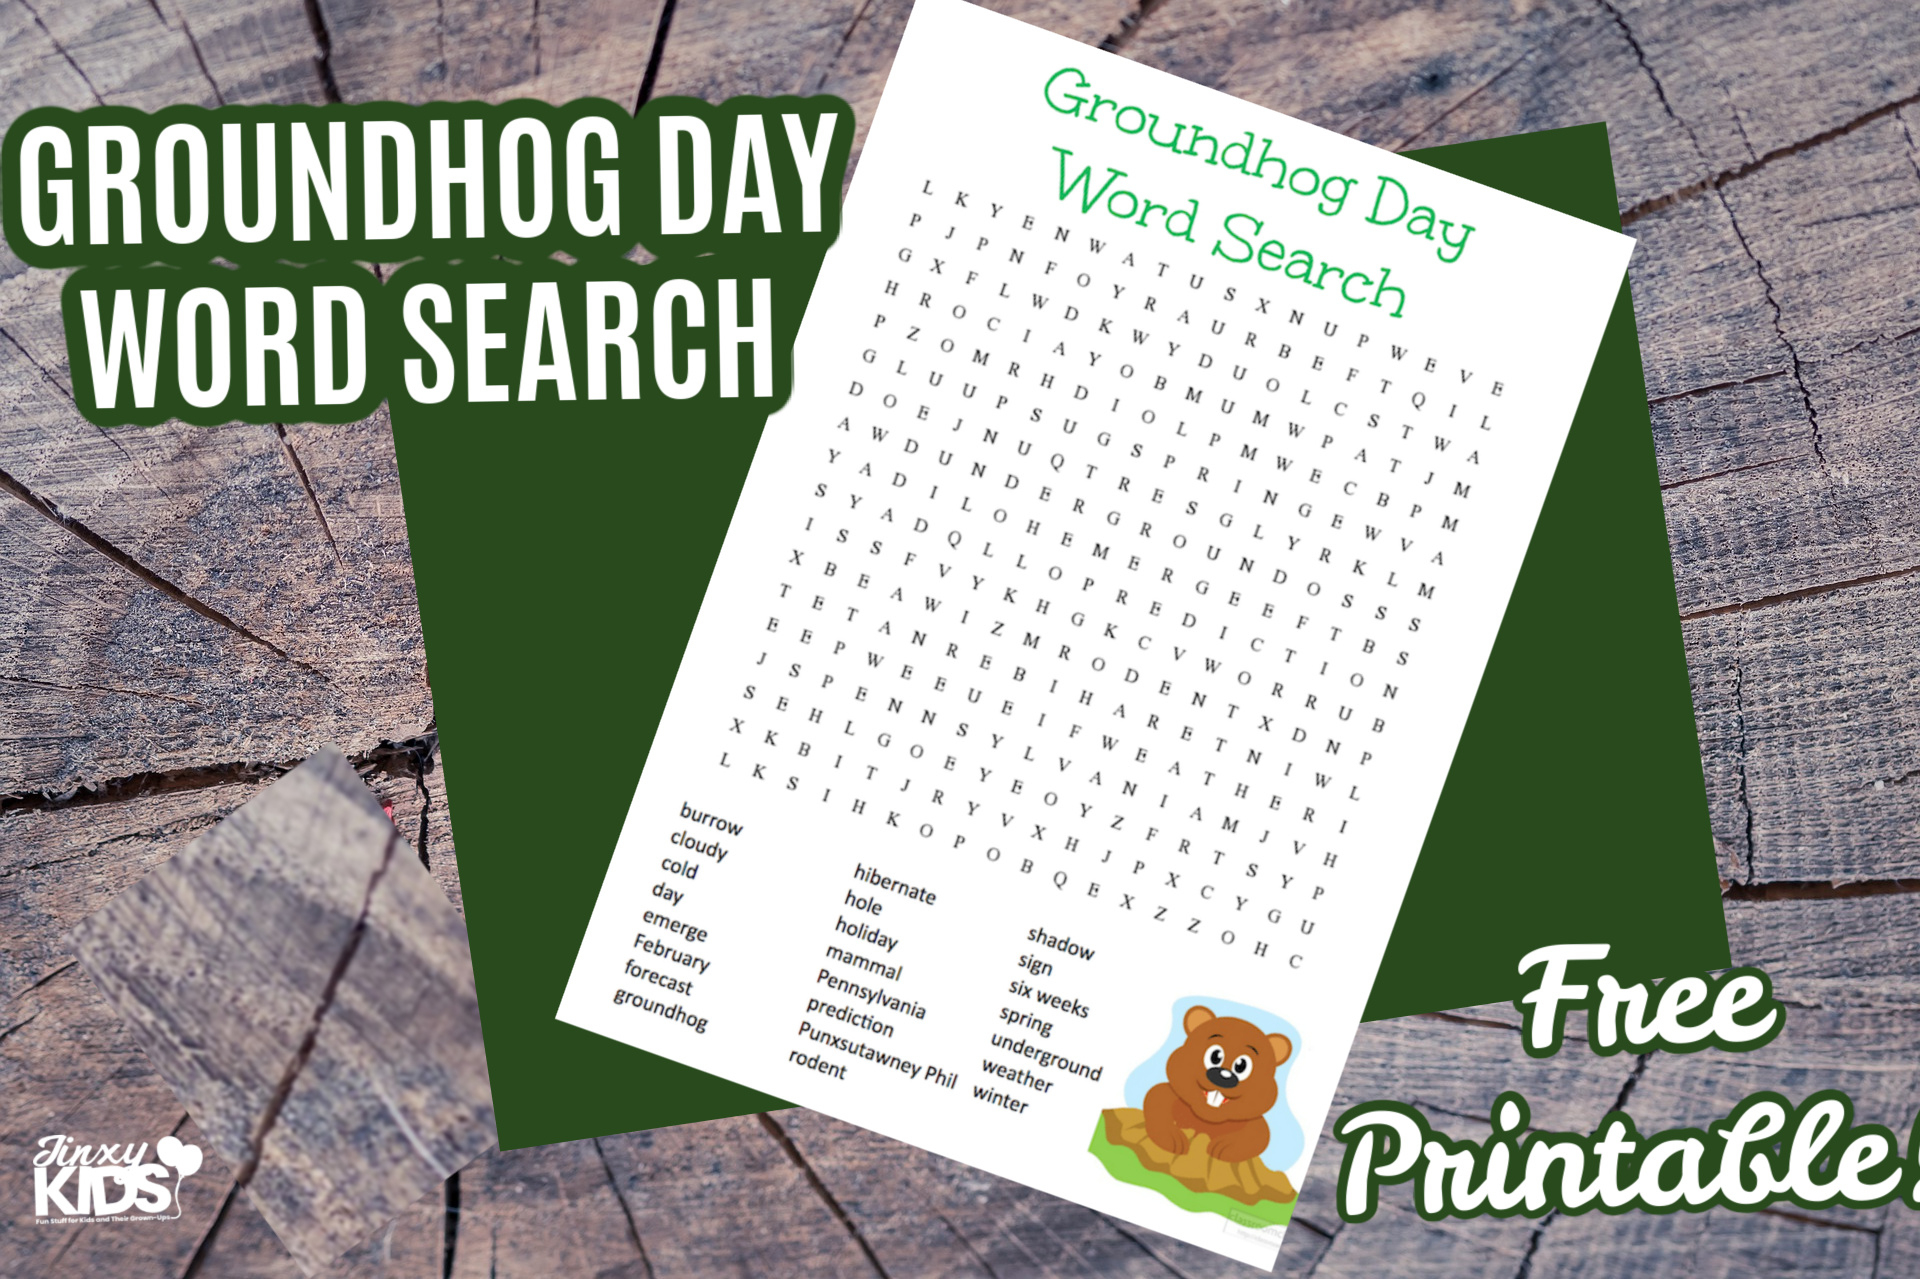 Free Printable Groundhog Day Word Search Puzzle - Jinxy Kids